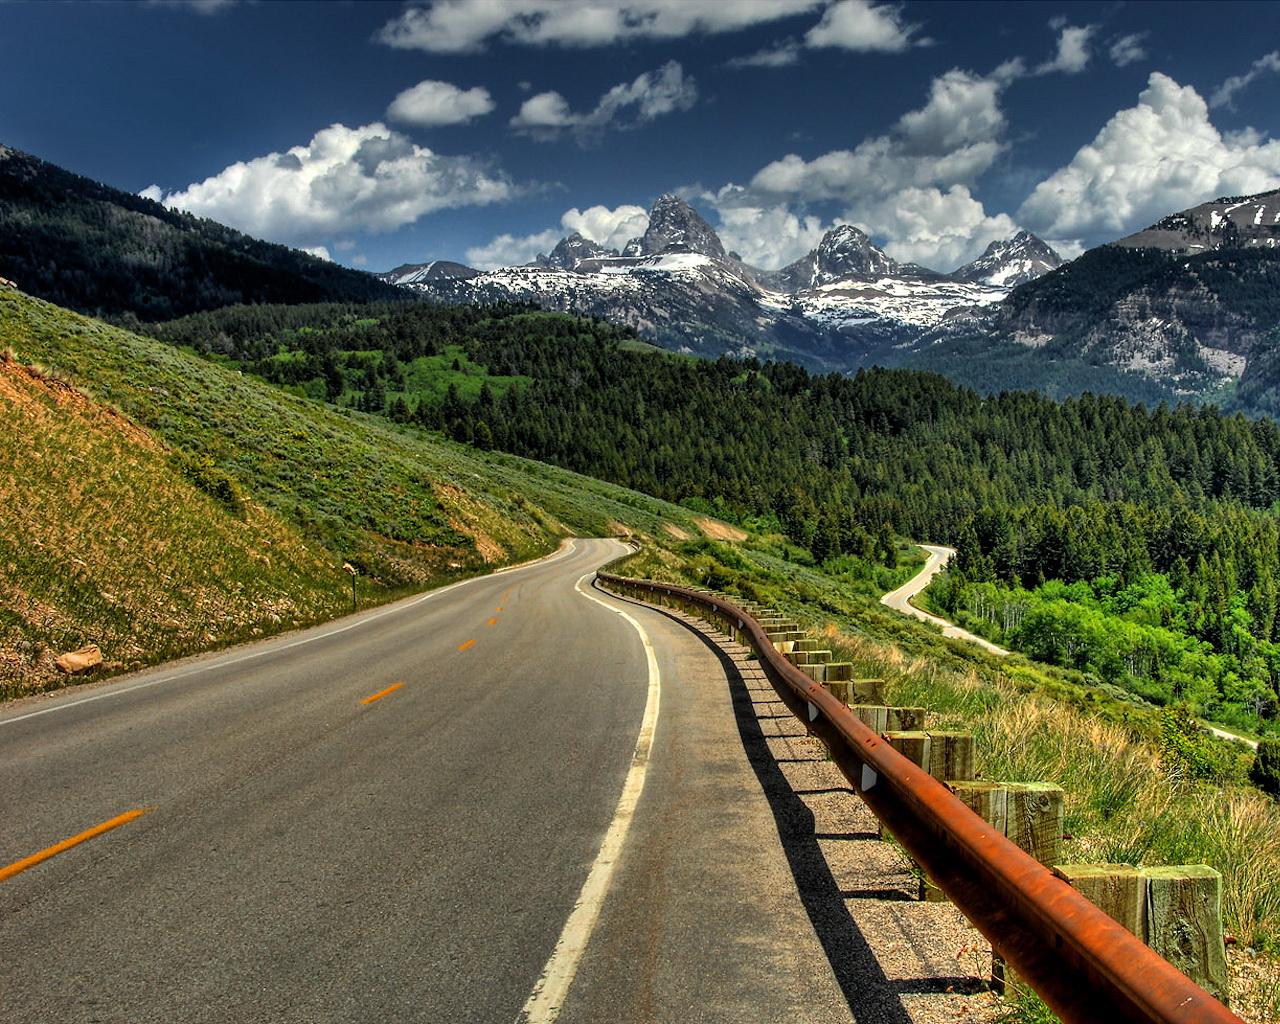 Road Wallpapers Road Wallpapers | Desktop Wallpapers - Page 7